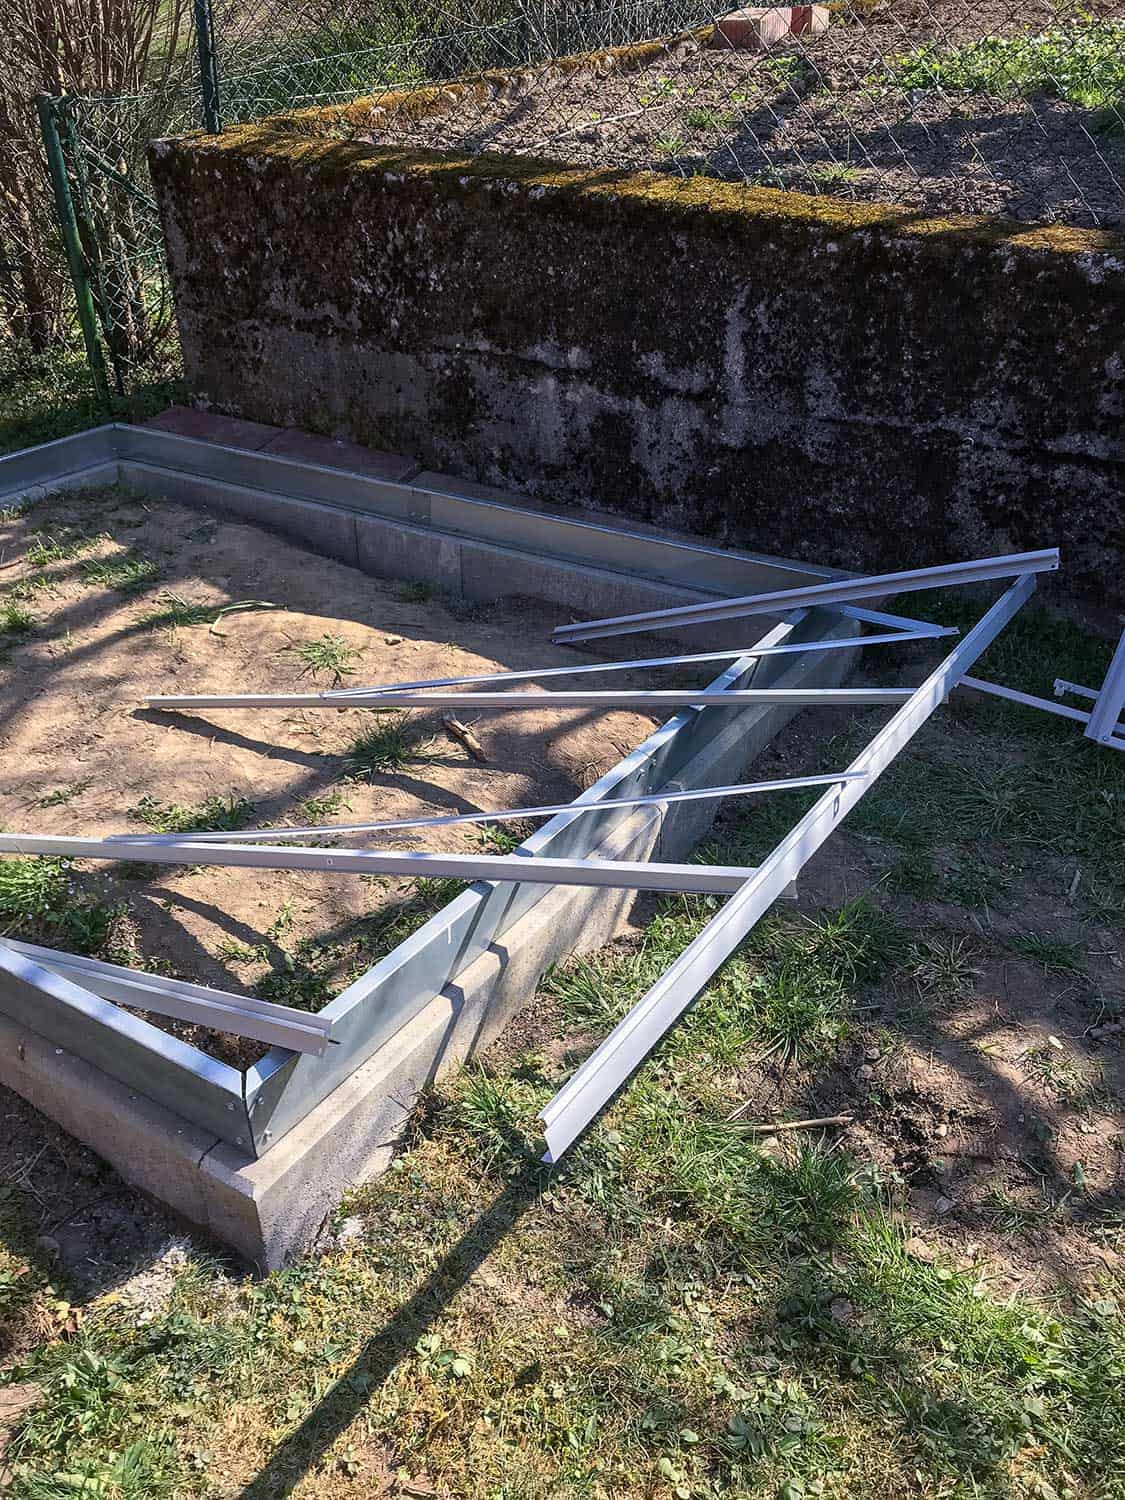 Metal side panels with window for a greenhouse